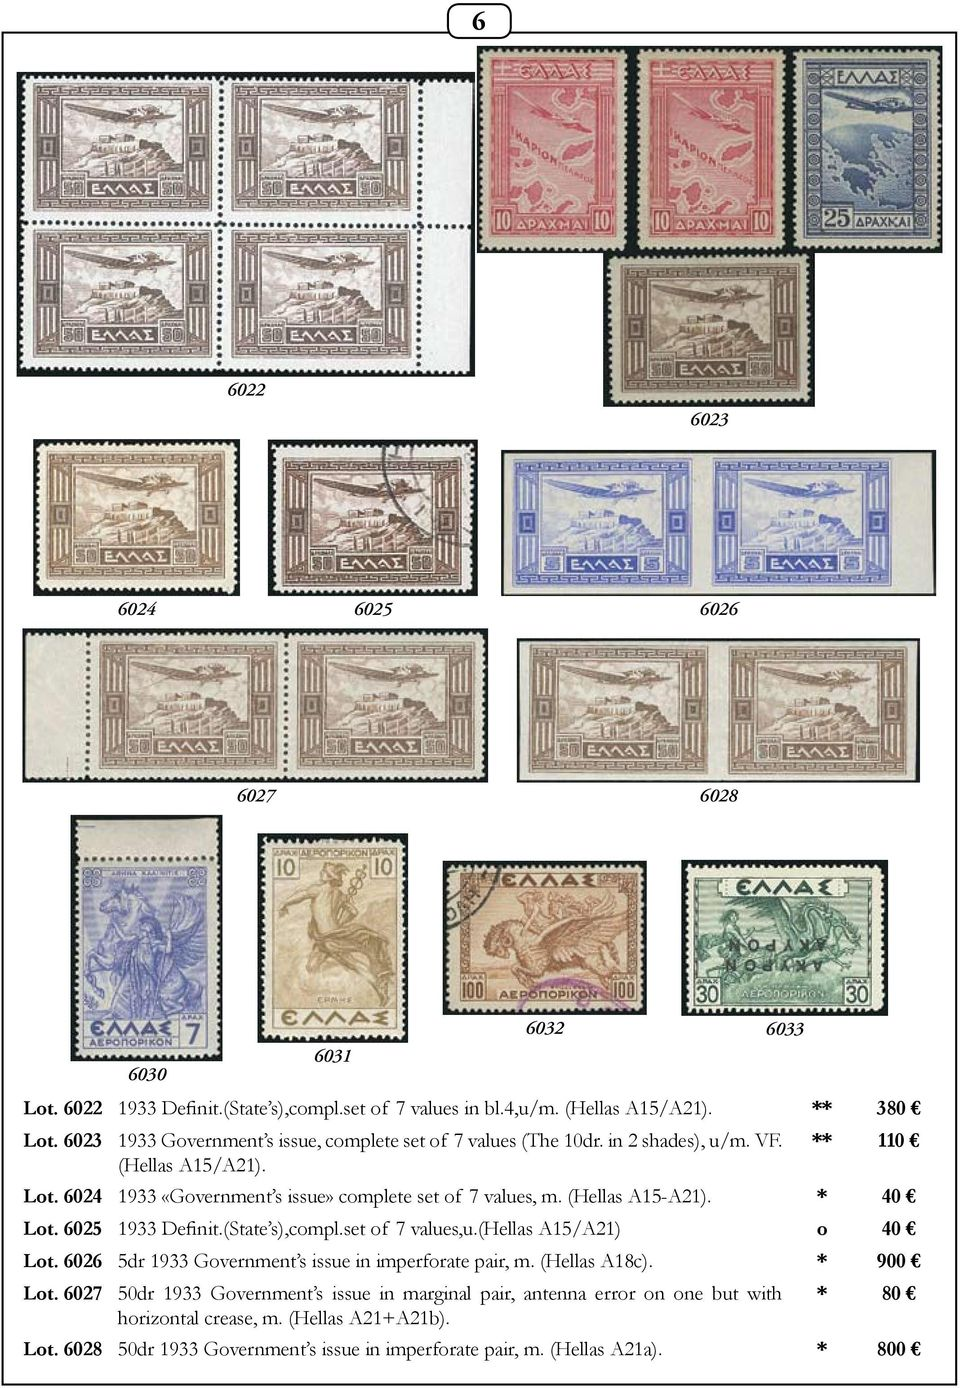 (Hellas A15-A21). * 40 Lot. 6025 1933 Definit.(State s),compl.set of 7 values,u.(hellas A15/A21) o 40 Lot. 6026 5dr 1933 Government s issue in imperforate pair, m. (Hellas A18c).